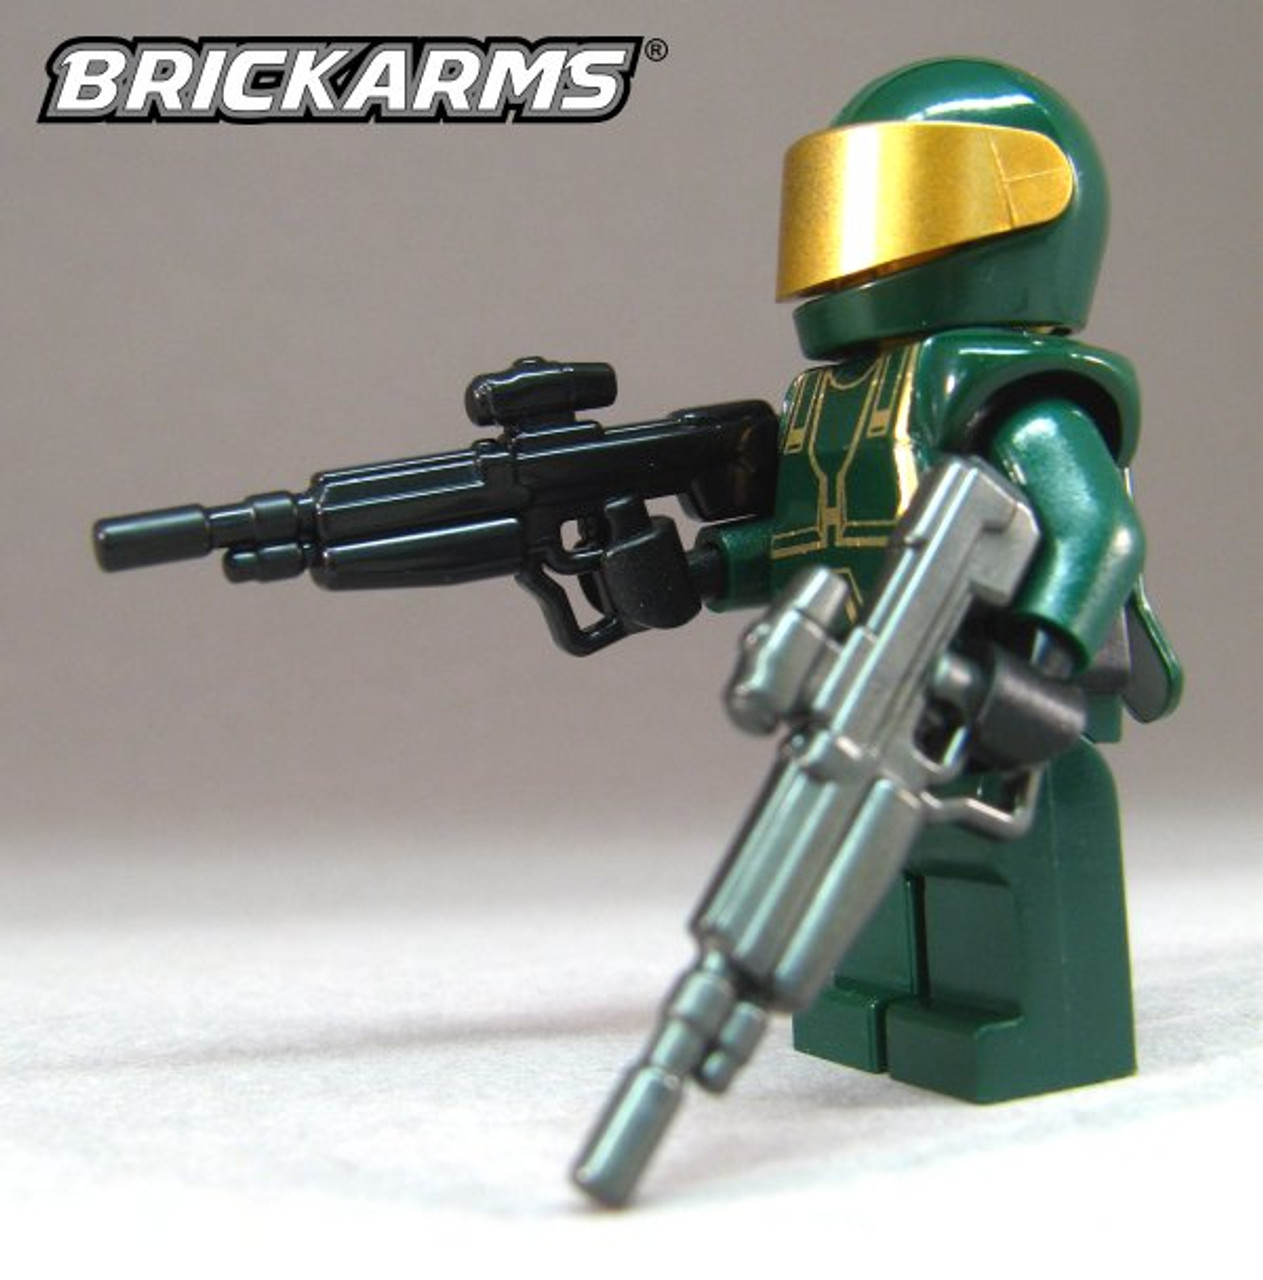 BrickArms Experimental Designated Marksman's Rifle (XDMR)